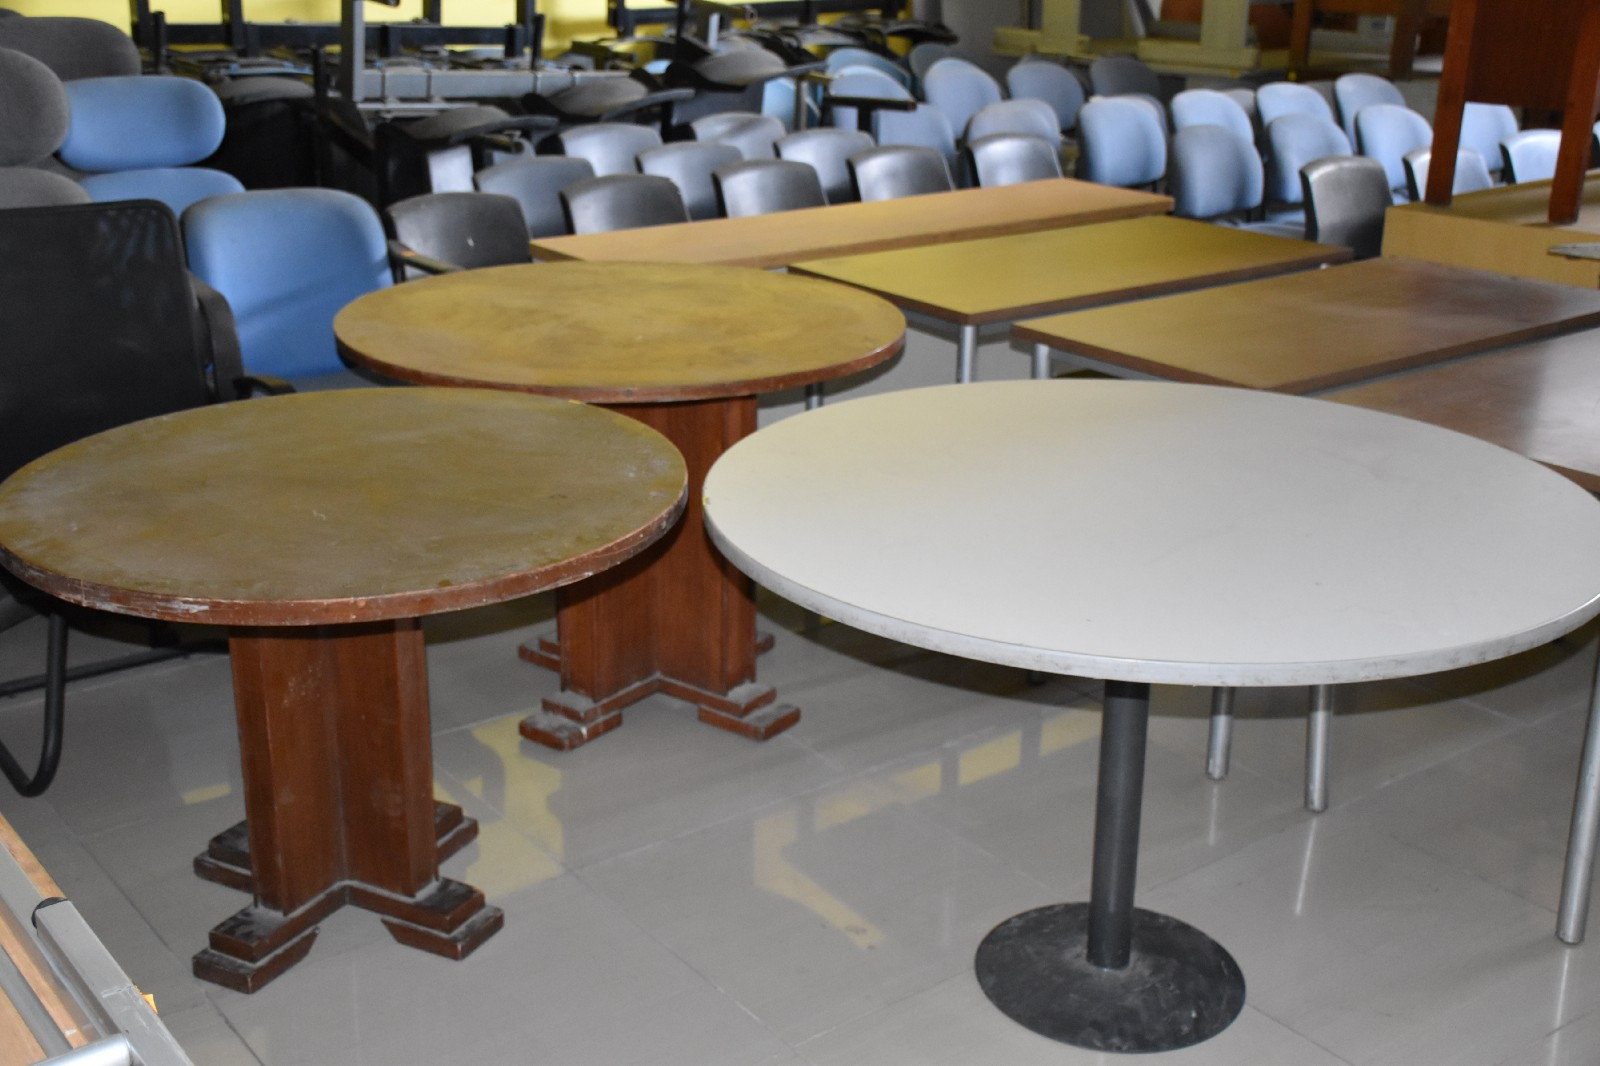 Biggest japan surplus office furniture supplier chain in the philippines is megaoffice surplus we offer top of the line used office furniture items at